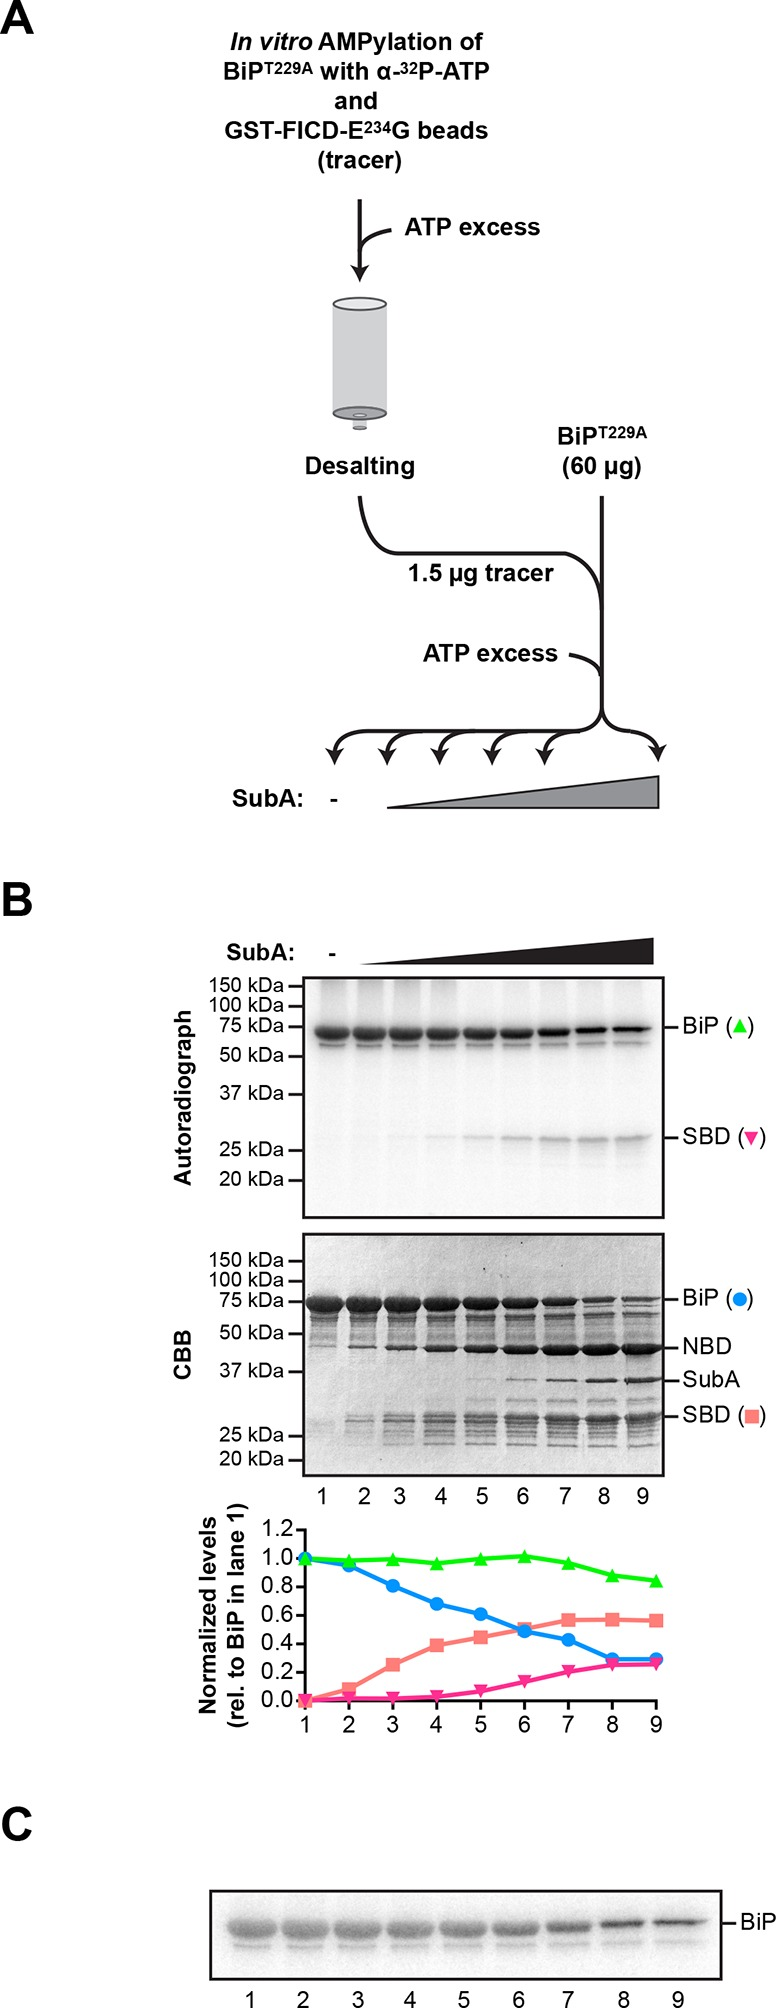 """Comparison of the differential susceptibility of unmodified and AMPylated BiP to cleavage by SubA in vitro. (A) Schema of the experimental design. ATP hydrolysis-deficient BiP T229A protein was AMPylated in presence of radioactive α- 32 P-ATP with catalytically active GST-FICD E234G coupled to GSH-Sepharose beads. The enzyme-containing beads were removed by centrifugation and excess of non-radioactive ATP was added to the supernatant to competitively displace non-covalently bound α- 32 P-ATP from BiP T229A . Unbound nucleotides were then removed by passing the sample through a desalting column. Trace amounts (1.5 µg) of the recovered 32 P-labeled AMPylated BiP T229A protein were added to excess of unmodified BiP T229A protein (60 µg; a mass ratio of 40:1) and the combined sample was supplemented with ATP and treated for 30 min with increasing concentrations of the SubA protease (0.08 to 120 ng/µl) before denaturing SDS-PAGE, Coomassie staining and autoradiography. ( B ) Autoradiograph and Coomassie stain (CBB) of an SDS-PAGE gel of BiP from samples described above. In the bottom panel, the Coomassie stain and radioactive signals of the full-length BiP and the substrate binding domain (SBD) were quantified and normalized to the values in lane 1, which were set arbitrarily to 1 for full-length BiP and to 0 for the SBD (graph). The Coomassie stain signal reports of the fate of unmodified BiP T229A , whereas the radioactive signals report exclusively on the modified BiP T229A in the combined sample. NBD denotes the nucleotide binding domain. ( C ) A shorter exposure (1 hr versus 8 hr) of the autoradiograph shown in """"B"""", above. It reveals the substantial conservation of the radioactive signal emanating from intact BiP across the time course (the green plot in """"B"""" above), which is obscured by changes in the band width introduced by the progressive digestion of the unlabeled (and unmodified) intact BiP in the sample. DOI: http://dx.doi.org/10.7554/eLife.12621.007"""